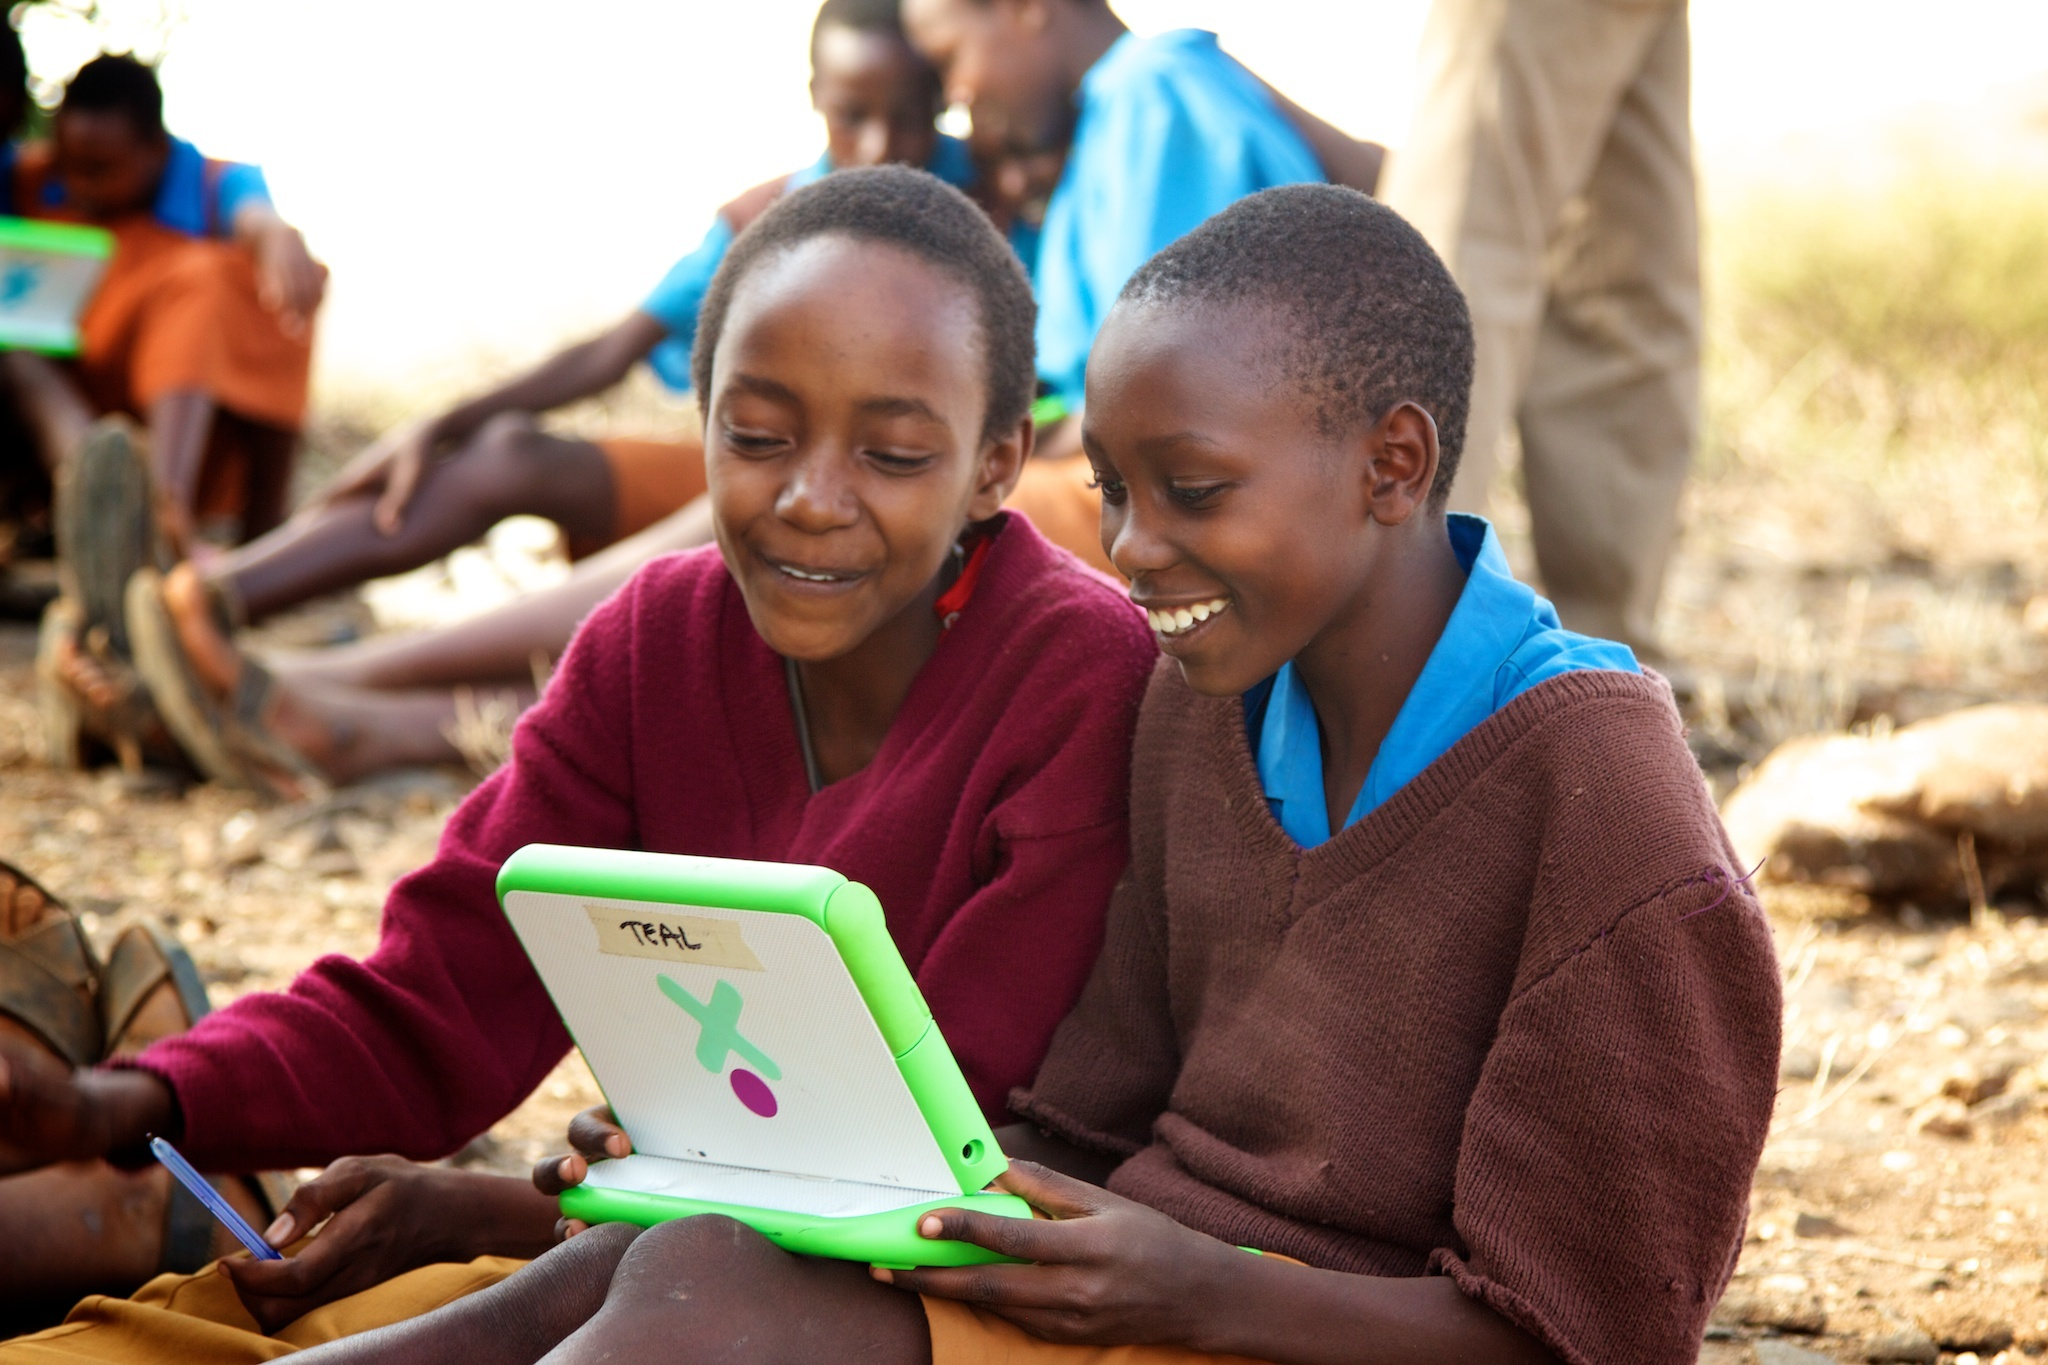 Kenya's Digital Literacy Programme enters the next phase as two firms are selected for proof of concept